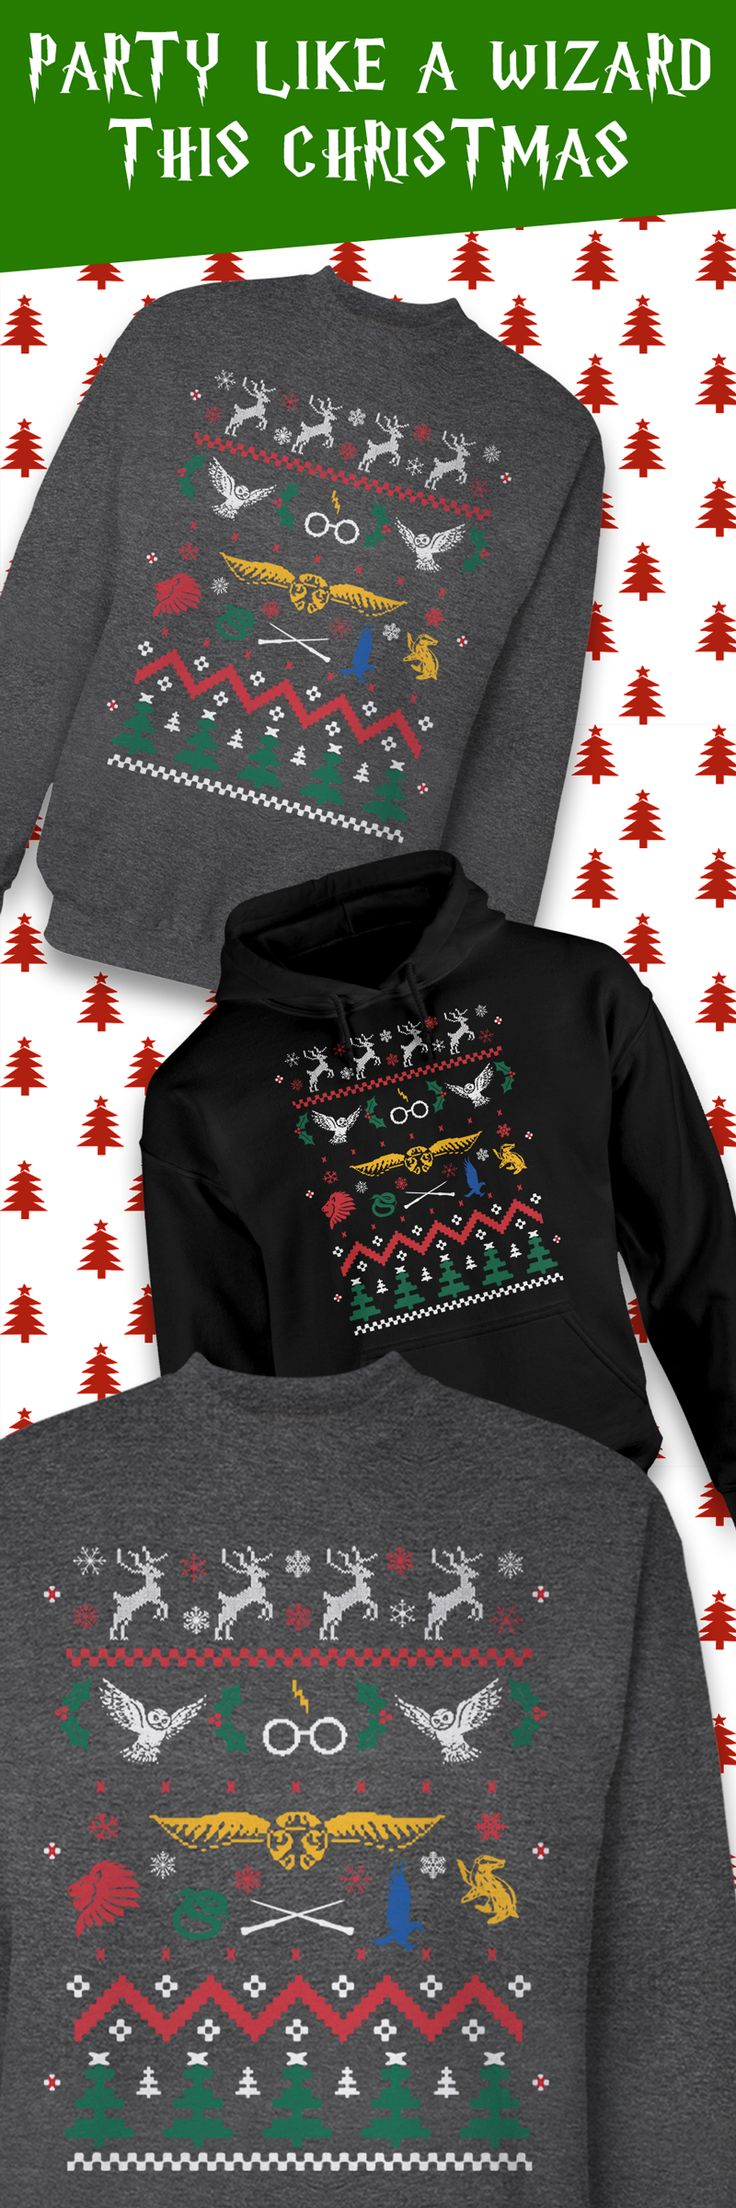 Whether you're headed to a holiday party or a funny Ugly Christmas Sweater gathering, this limited edition Harry Potter sweater will have you looking stylish while showing you're a true fan. The holiday season goes by quickly, so grab one for yourself or as a gift before it's too late!